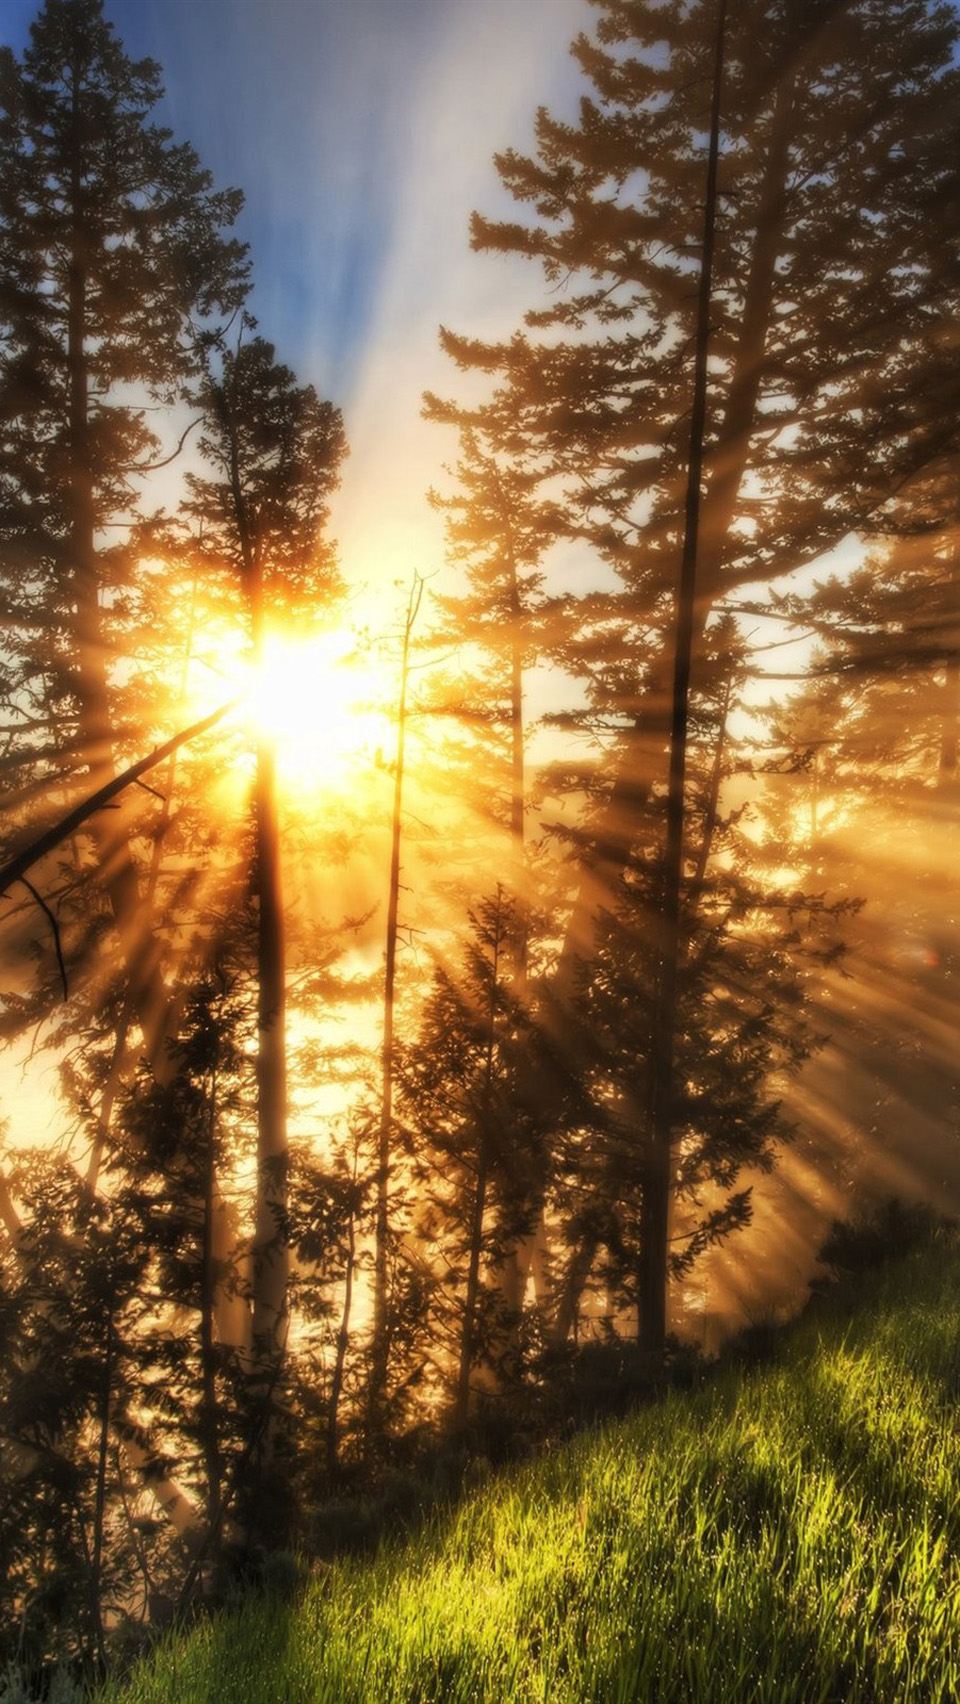 image - morning-sunbeams-beautiful-natural-scenery | animal jam